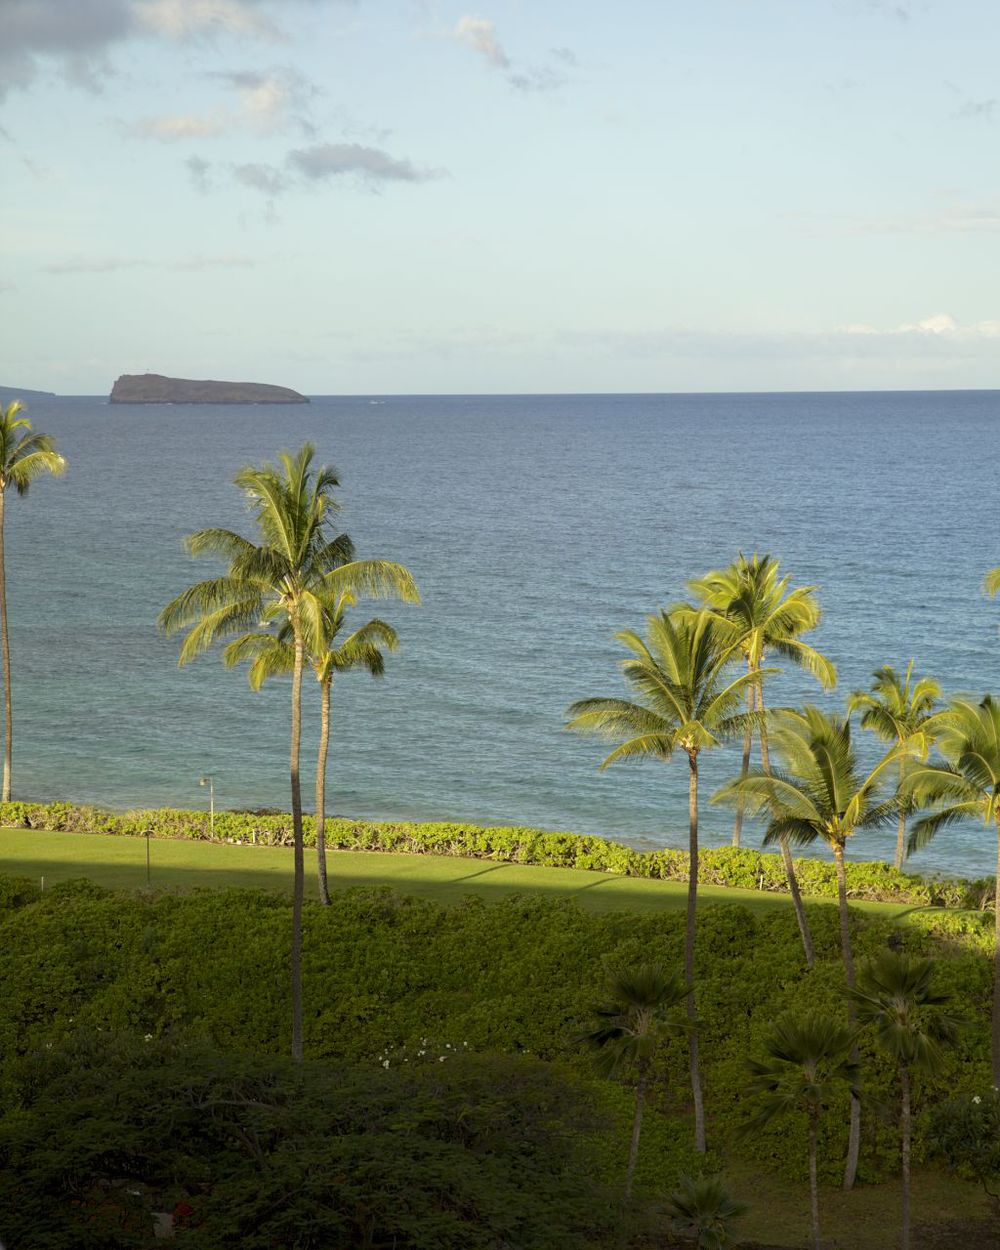 Once the sun came up, we could see that we had a pretty nice view from our lanai. We could even see Molokini, the volcanic crater about 3 miles offshore.